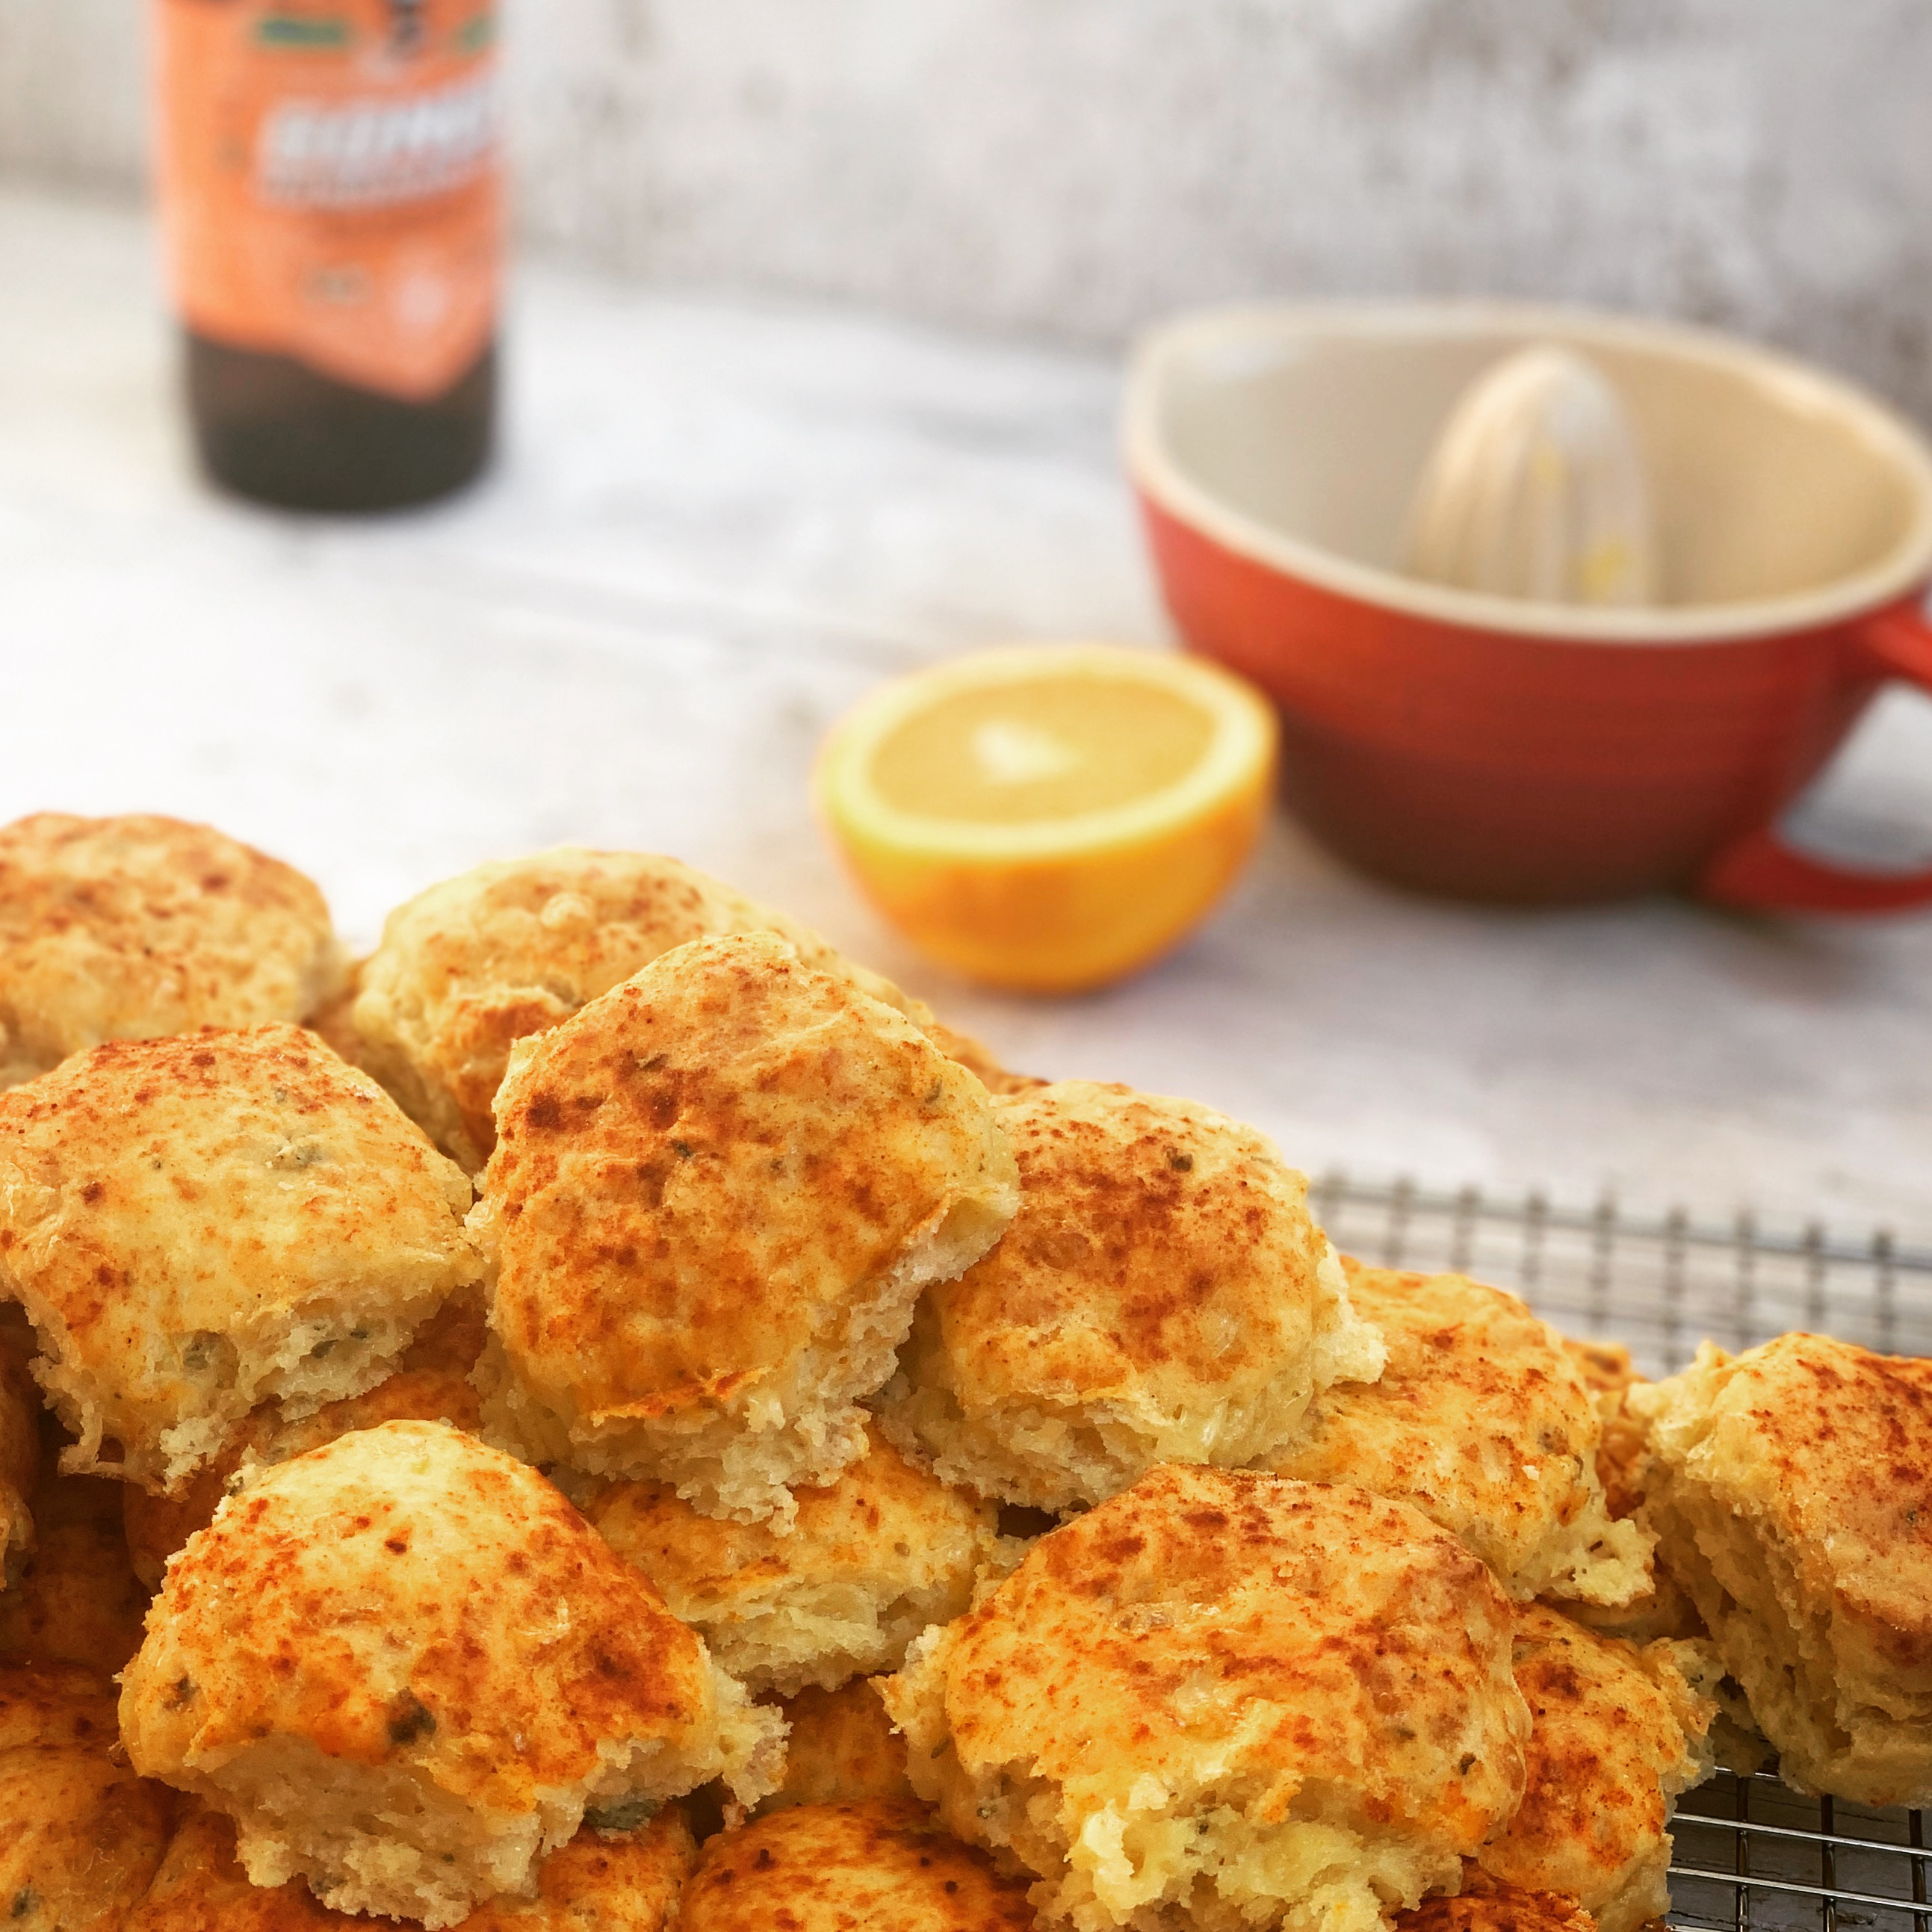 beer and orange scones, golden and flavoured with orange and sage